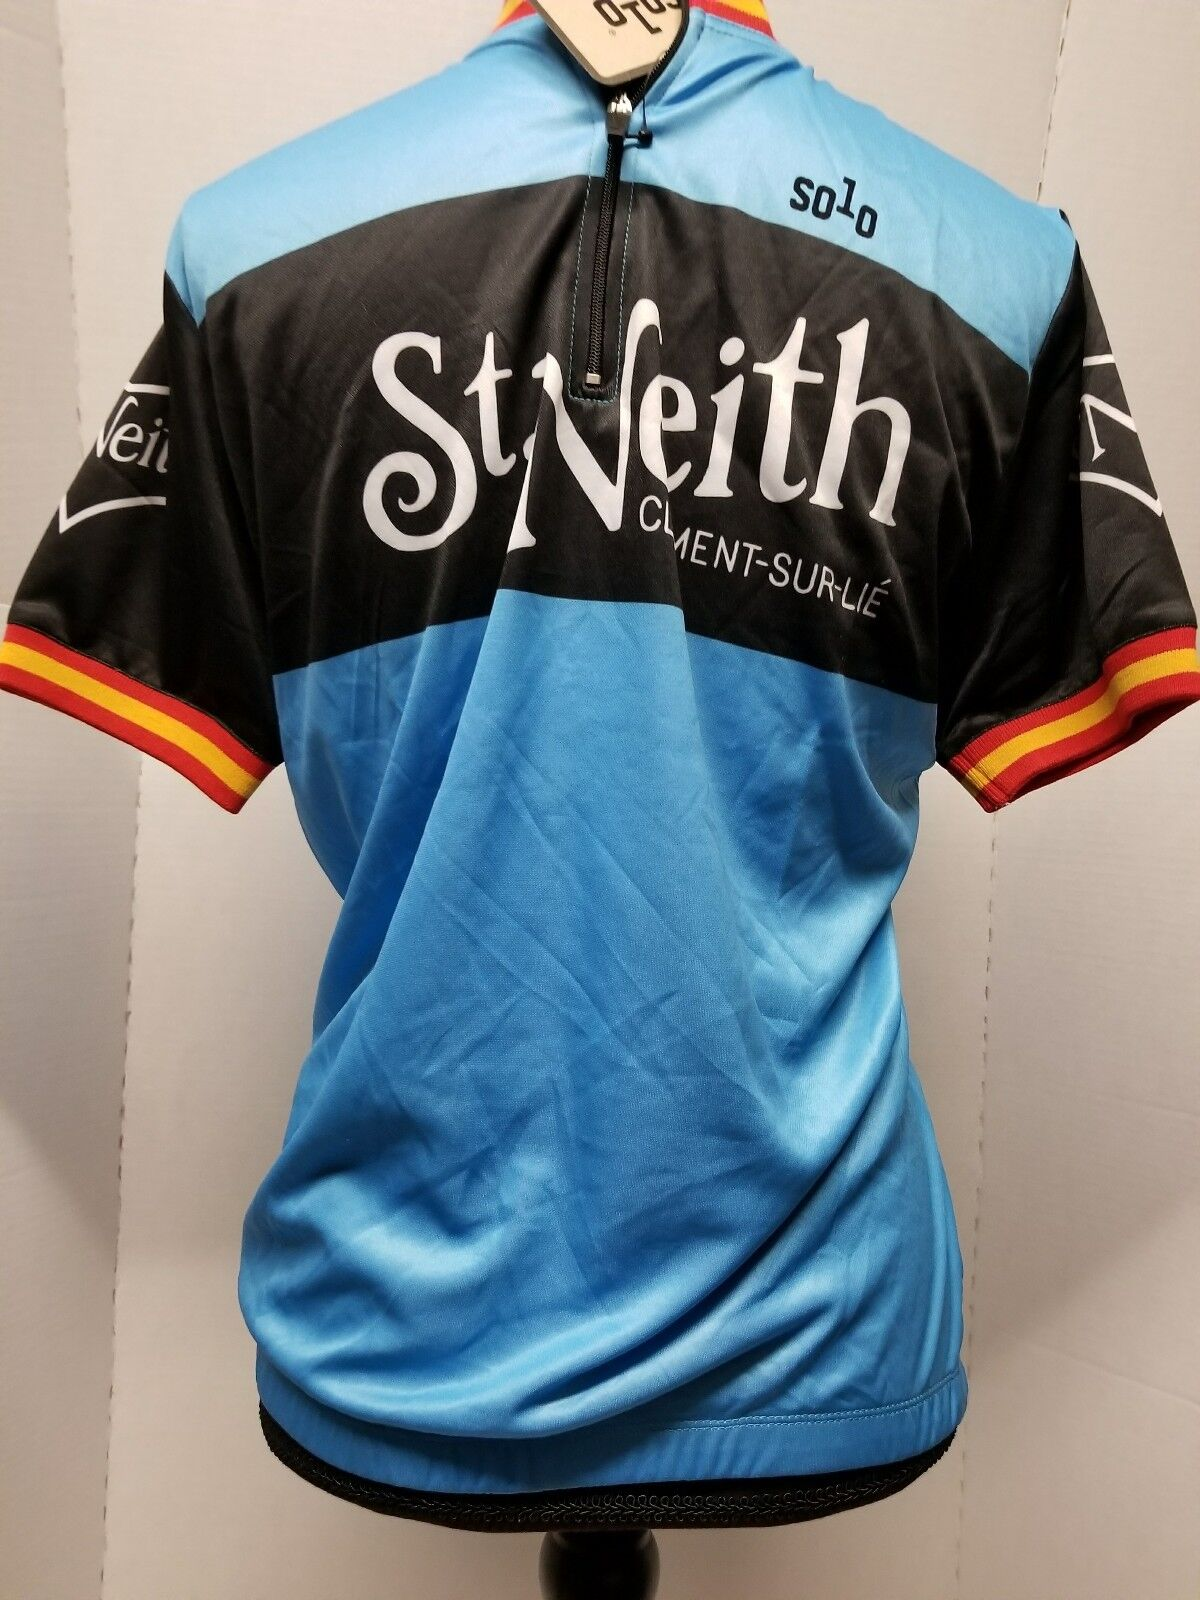 Solo St Neith Cycling Classique Jersey, tag, M New w/ tag, Jersey, Blau bike shirt Medium Top 4c0ad4